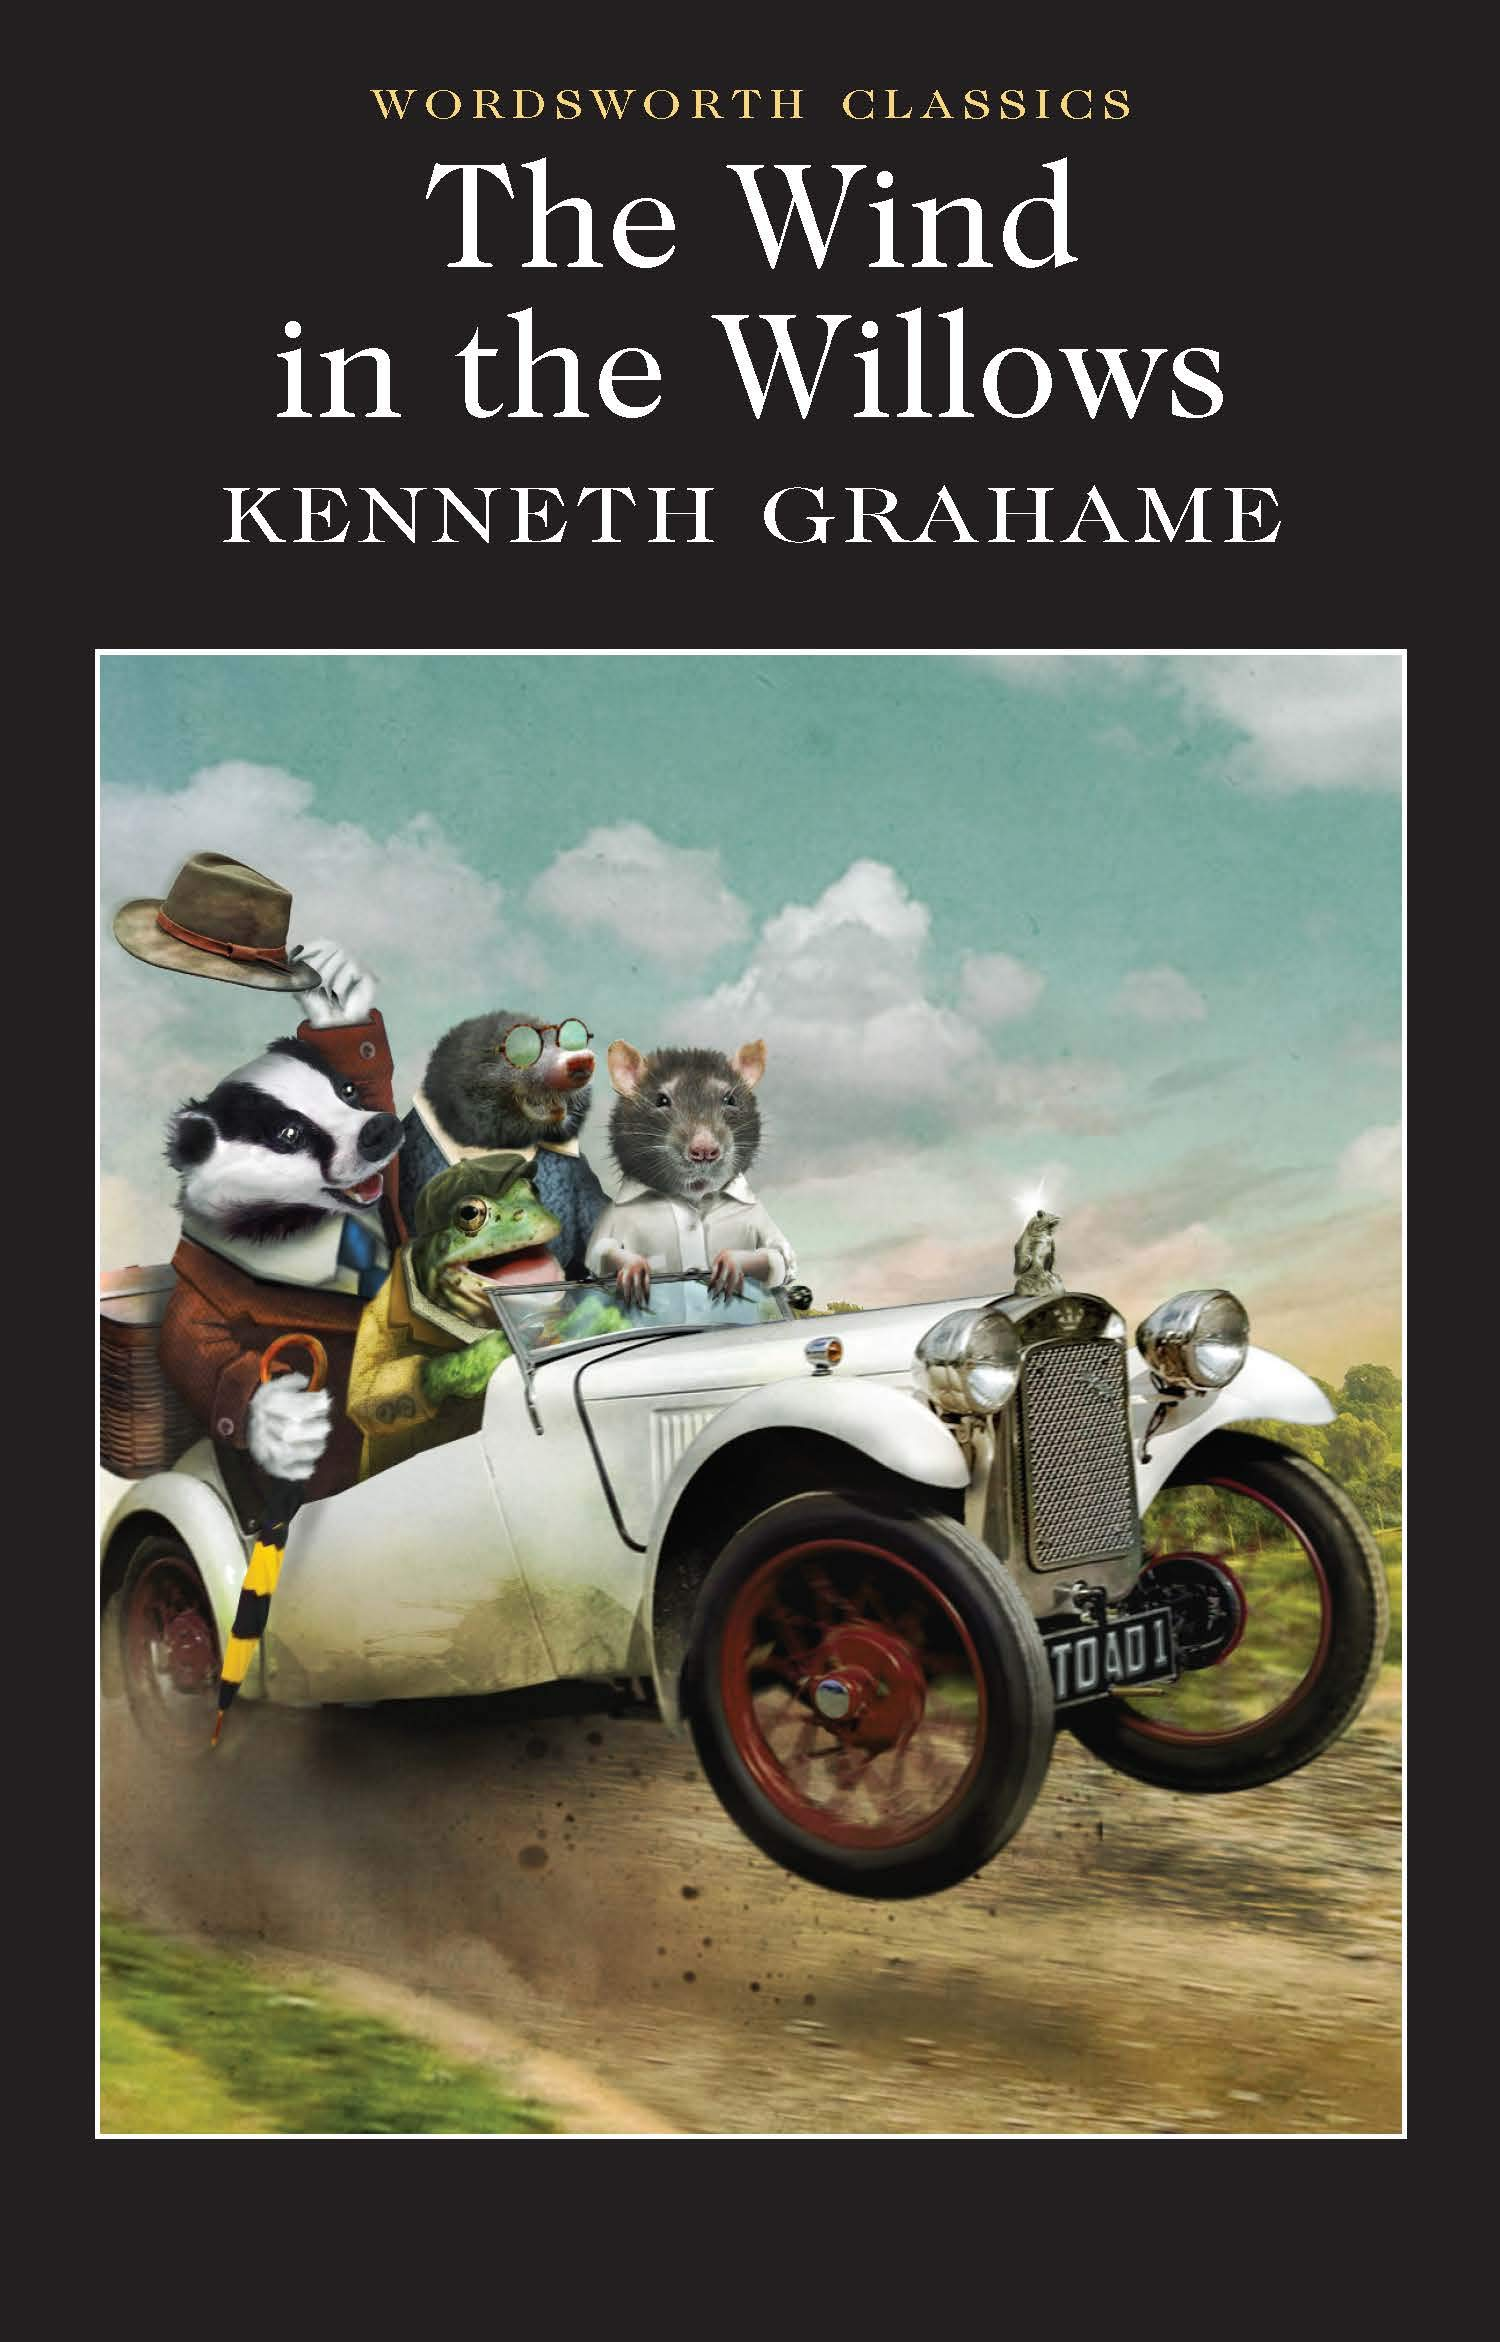 Wind in the Willows (Wordsworth Classics): Amazon.co.uk: Grahame, Kenneth,  Rackham, Arthur, Milne, A. A., Carabine, Dr Keith: 8601404323959: Books